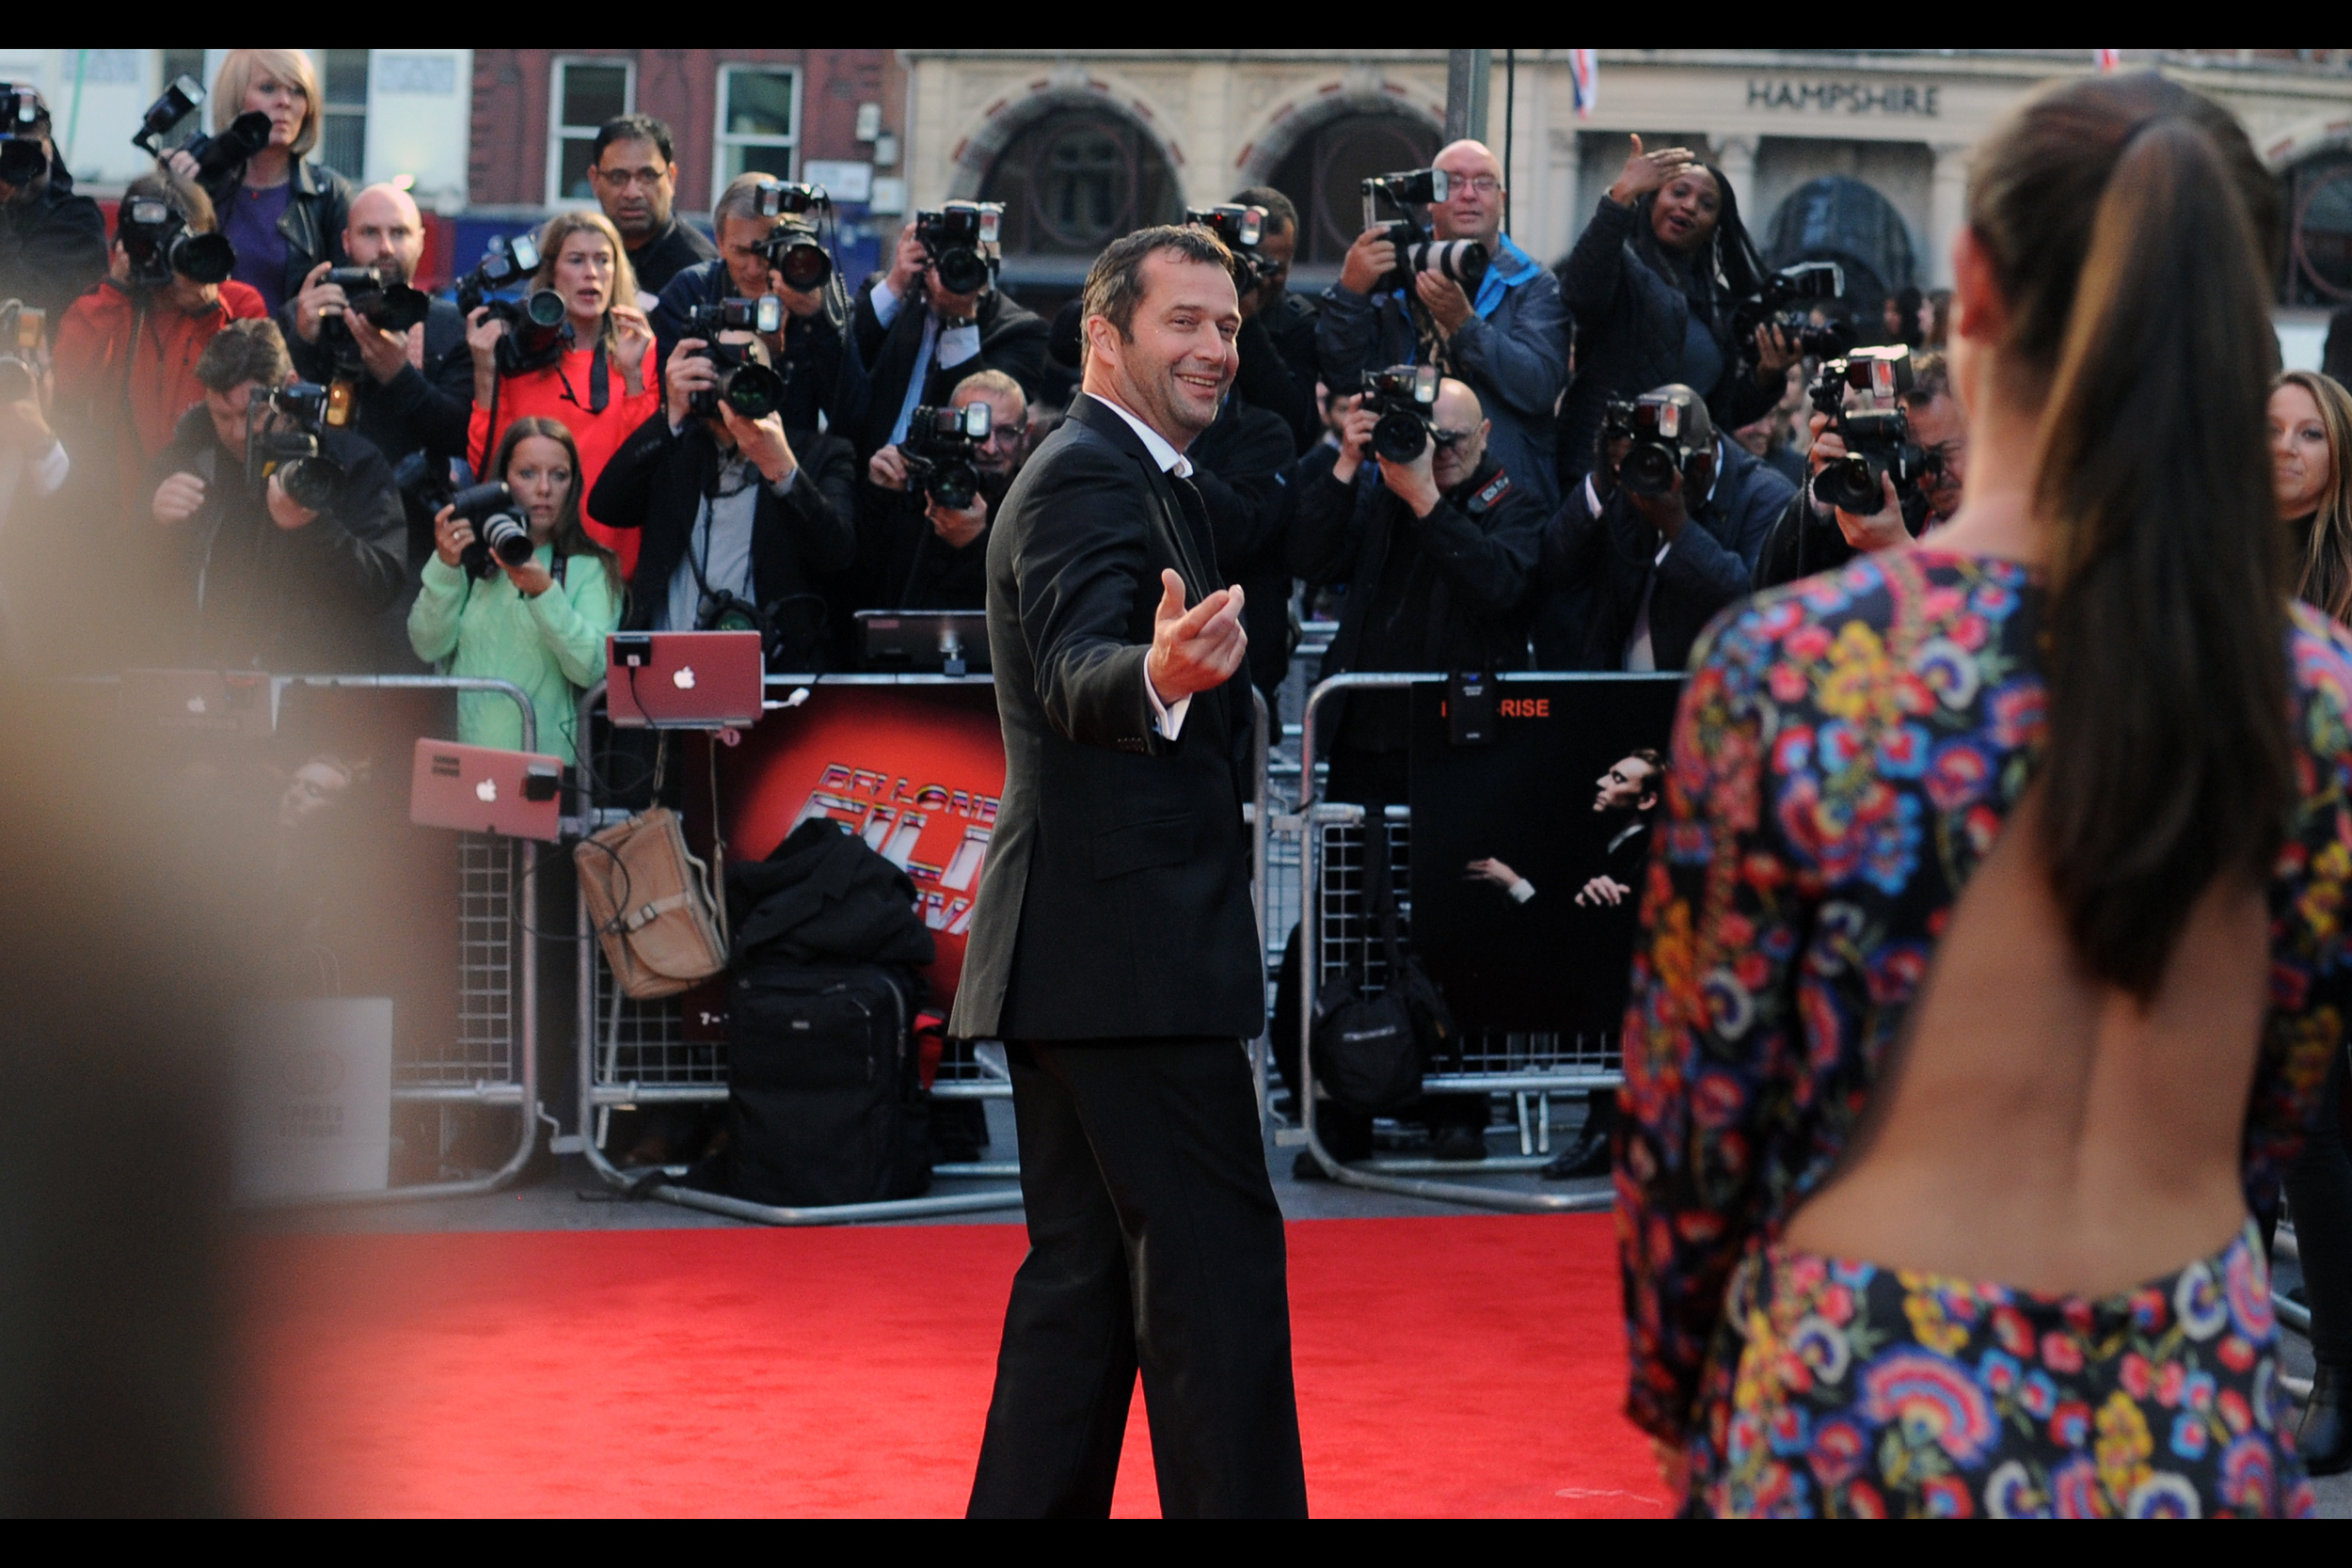 """Hey, babe. Wanna pose with me on the red carpet? "" I have to assume that's James Purefoy's wife/girlfriend, or that's a strategy a whole lot of men on red carpets are going to be trying."